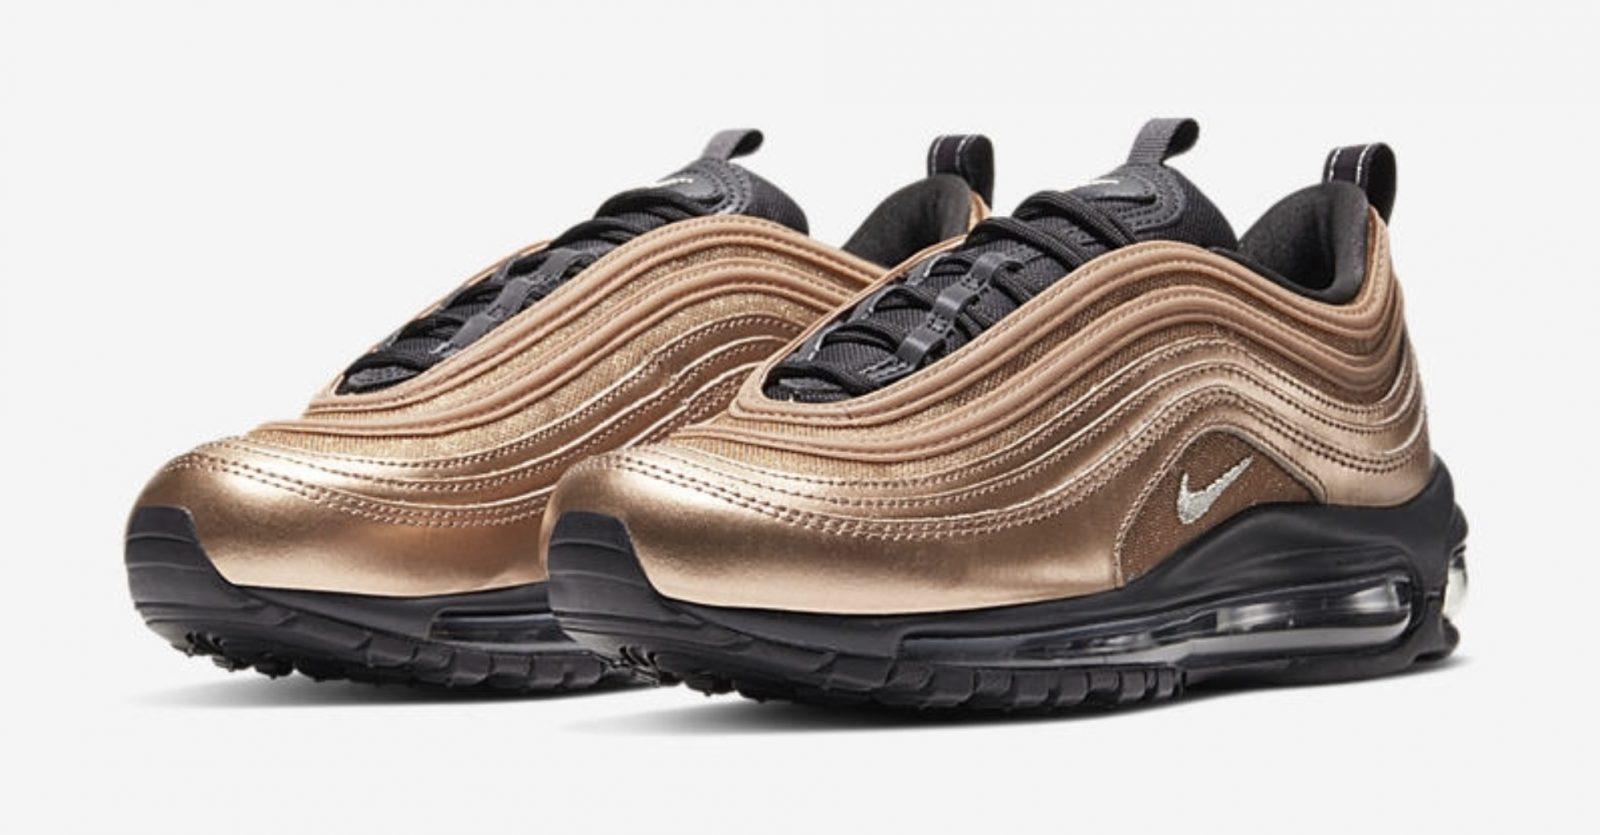 Get Seasonal In The Latest Nike Air Max 97 Metallic Gold